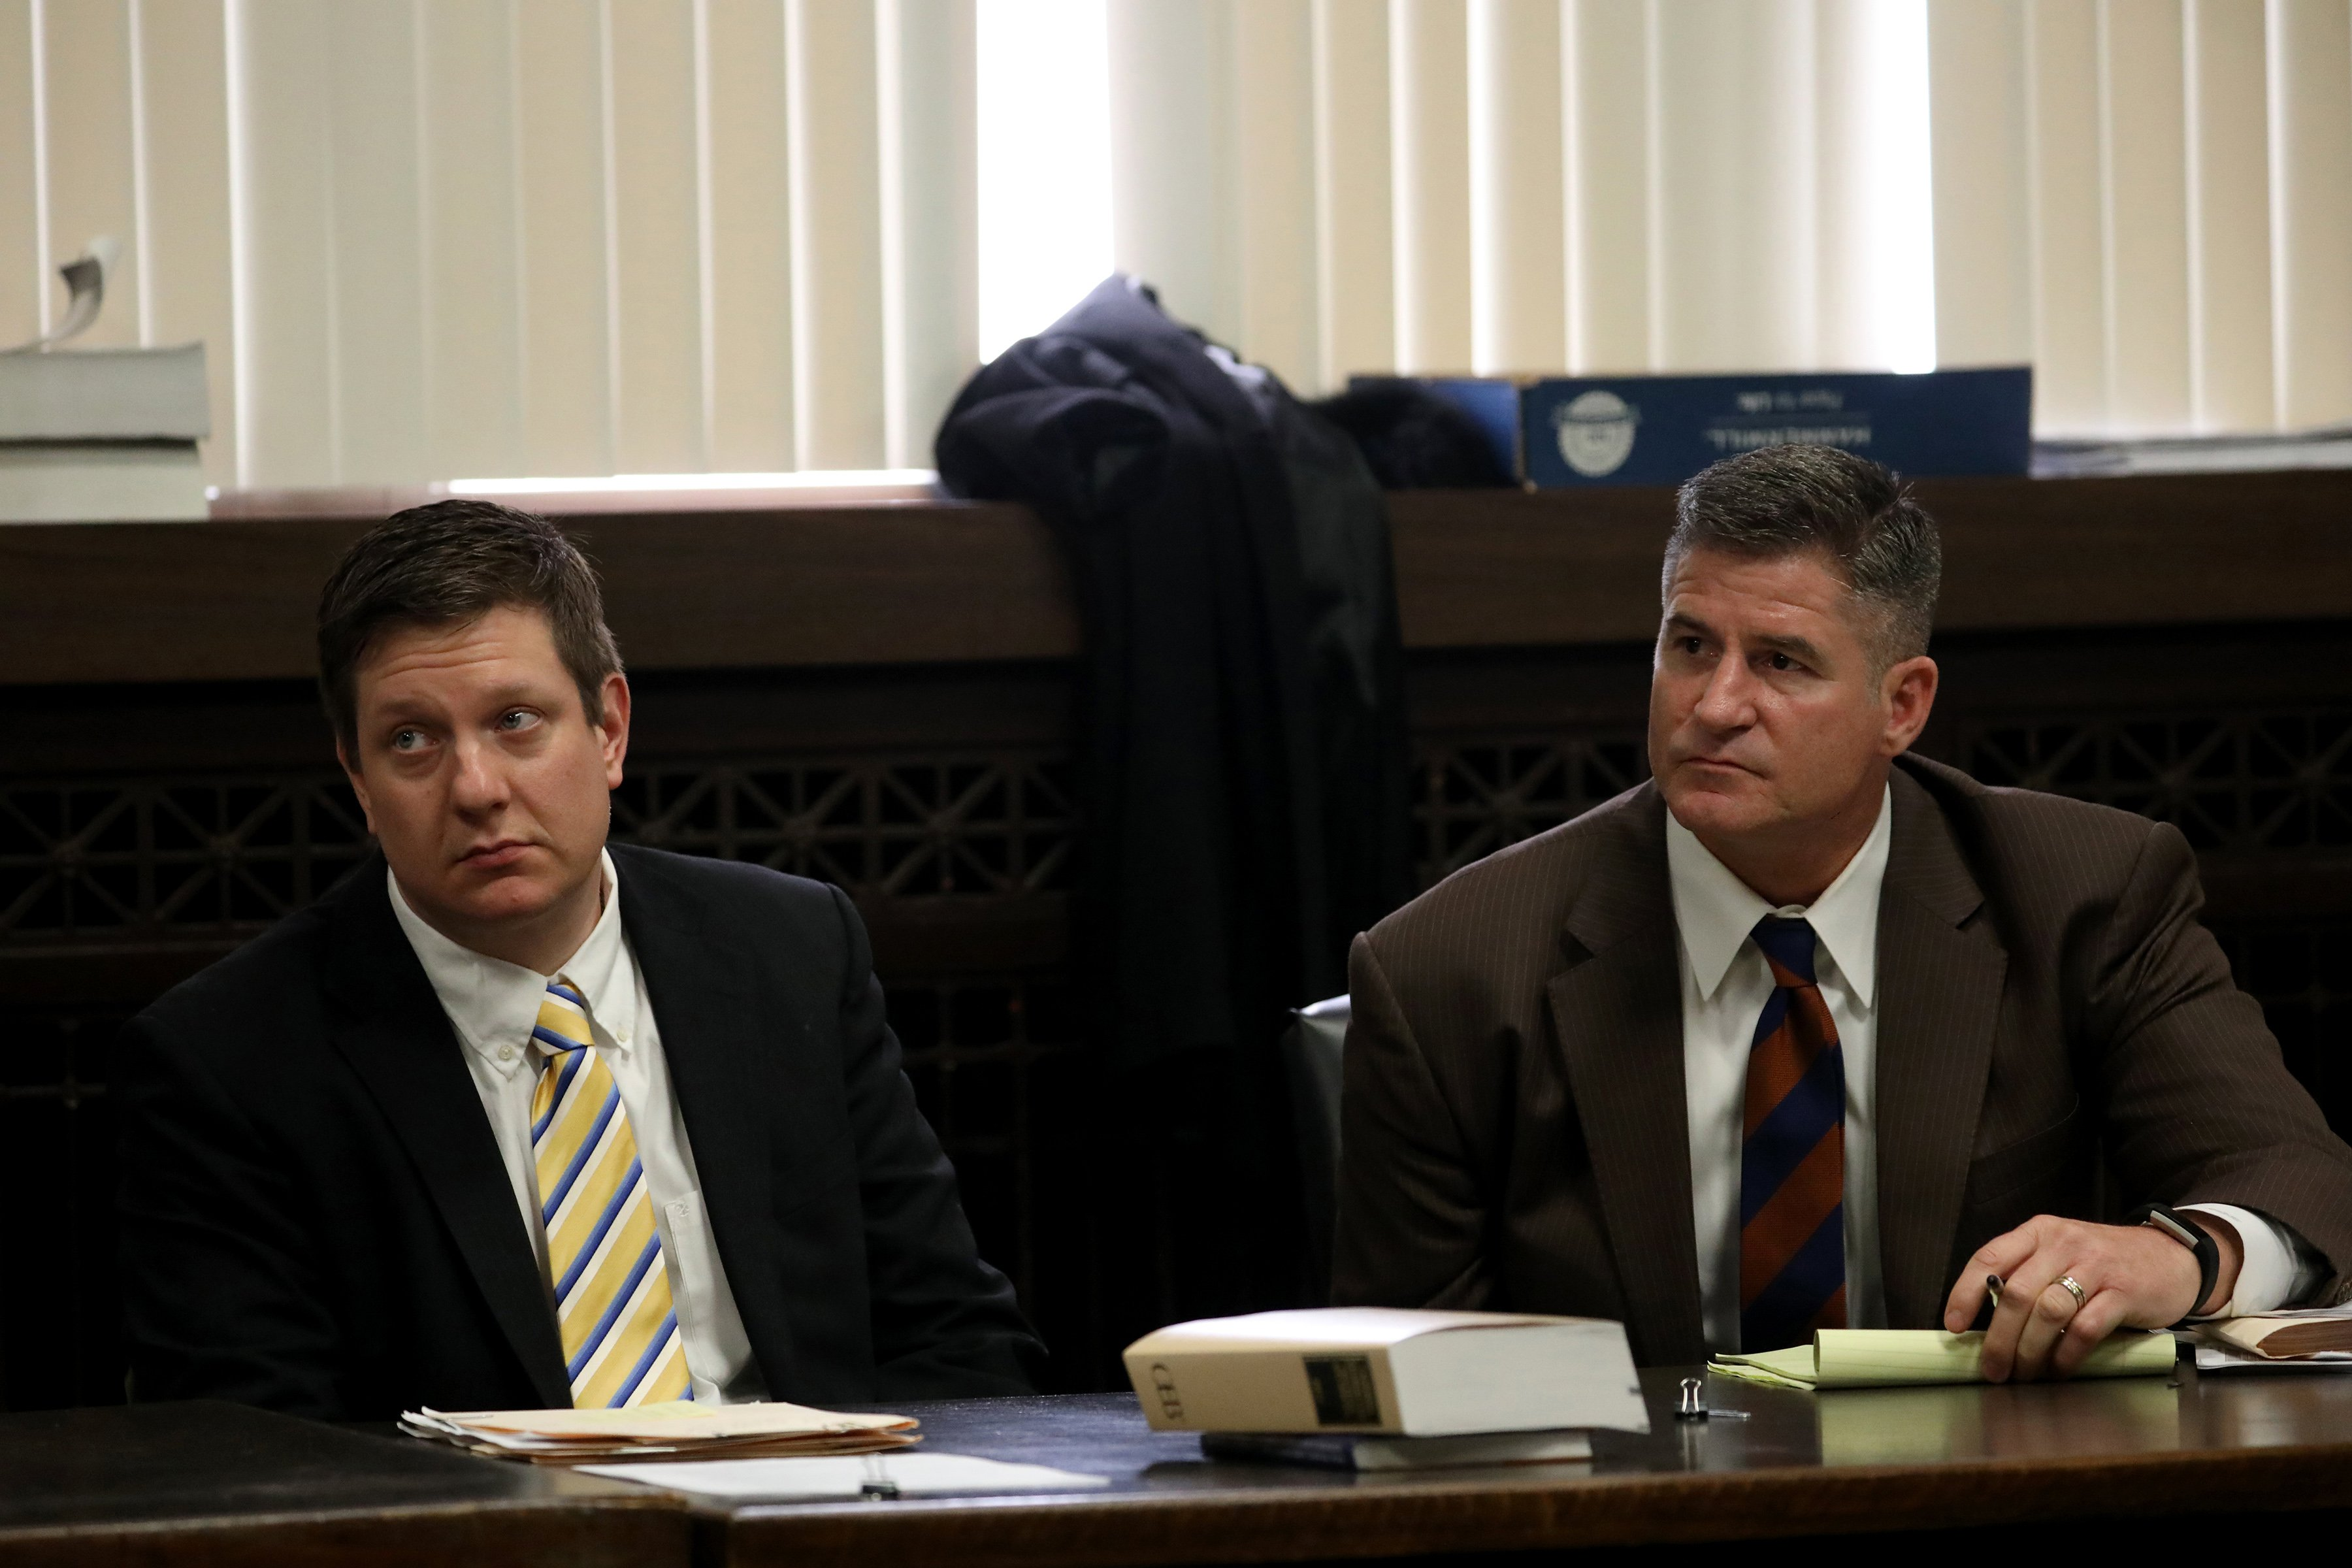 Jason Van Dyke, left, sits with his attorney Daniel Herbert at his hearing at Leighton Criminal Court in Chicago on April 18, 2018. (Nancy Stone / Chicago Tribune / Pool)